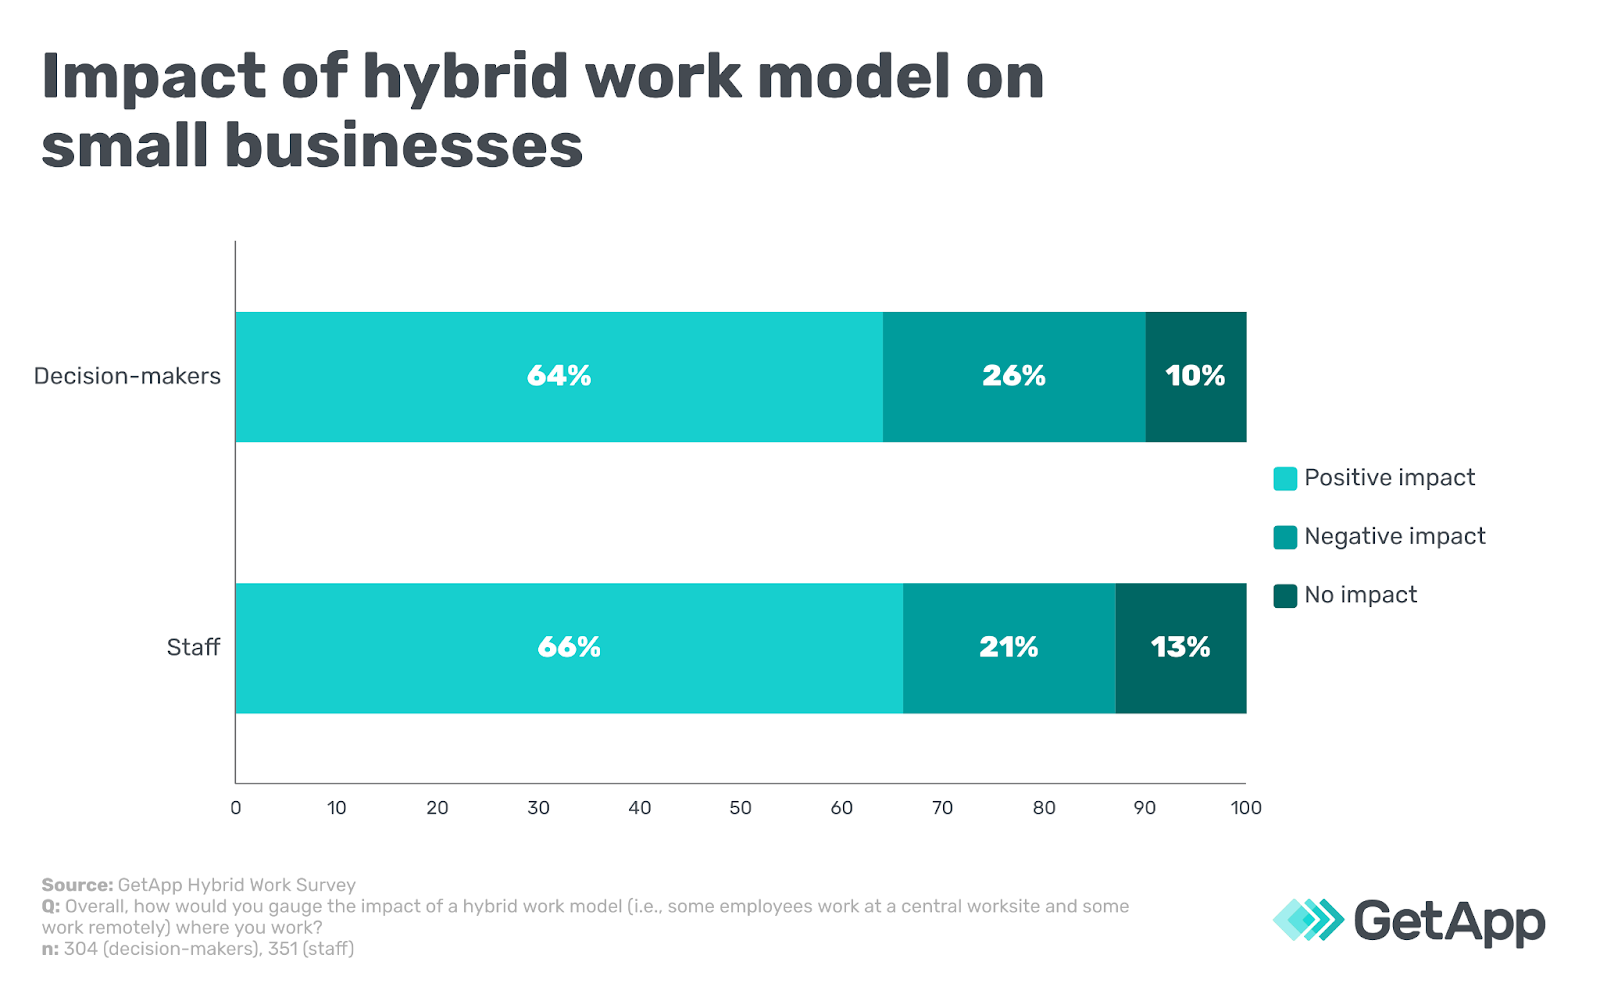 Impact of hybrid work model on small businesses